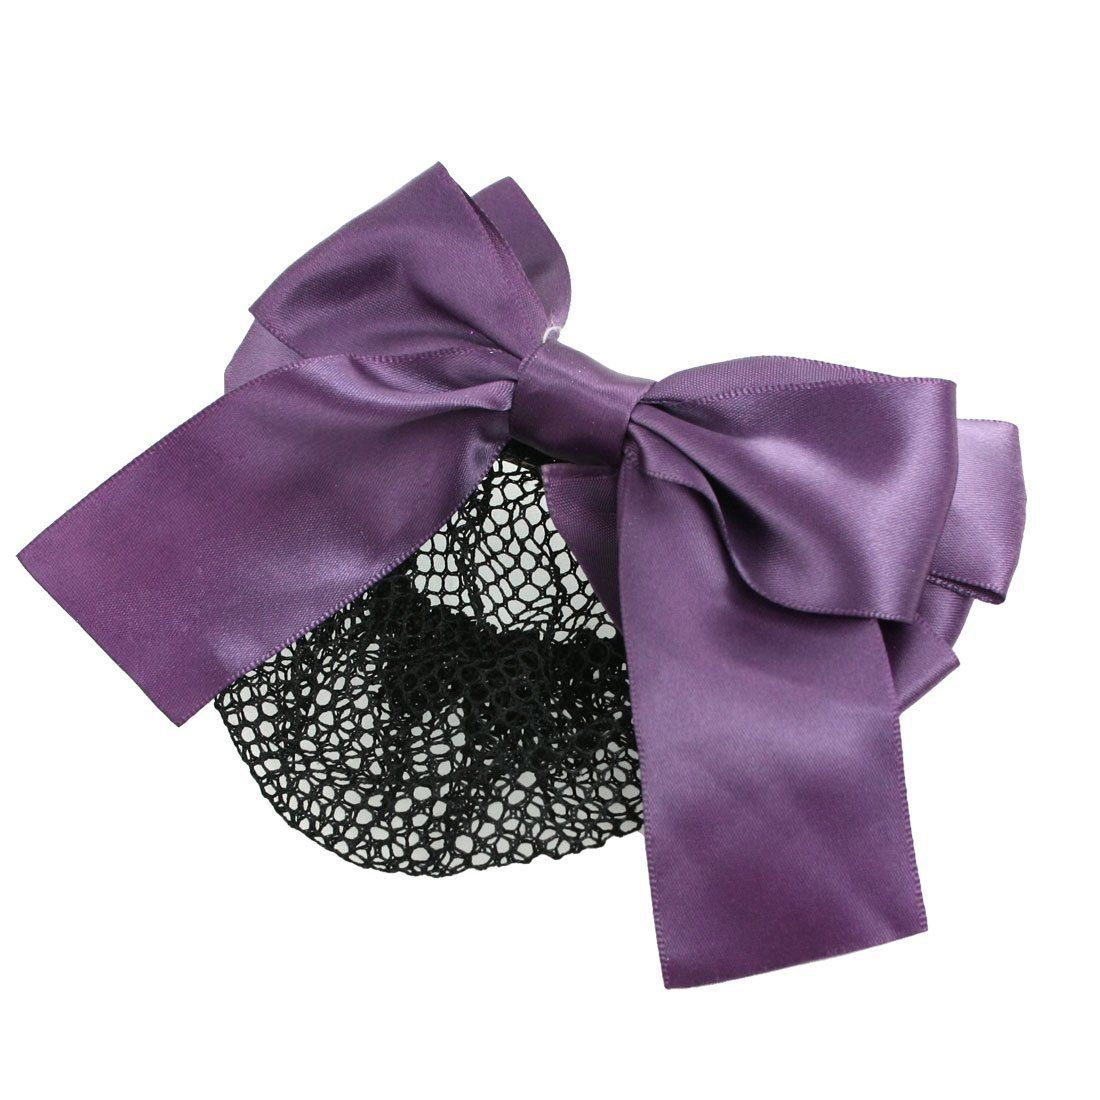 Toogoor purple polyester bowknot barrette hair clip snood net for